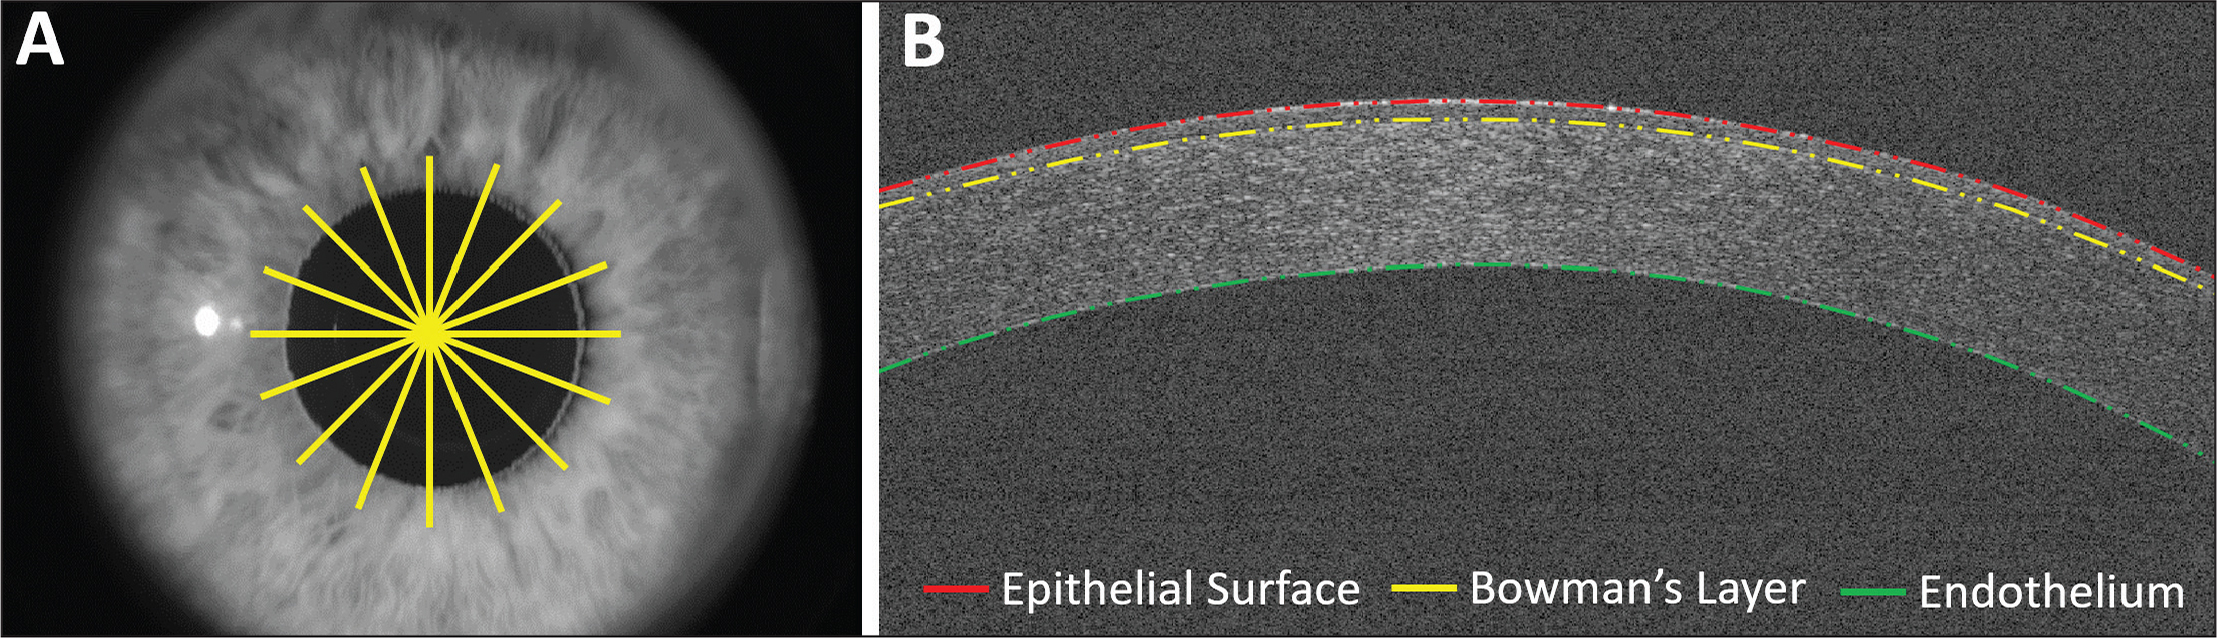 (A) Optical coherence tomography (OCT) radial scan pattern used to obtain 6-mm–wide images of the cornea. (B) Representative OCT image of a cornea with segmented boundaries.